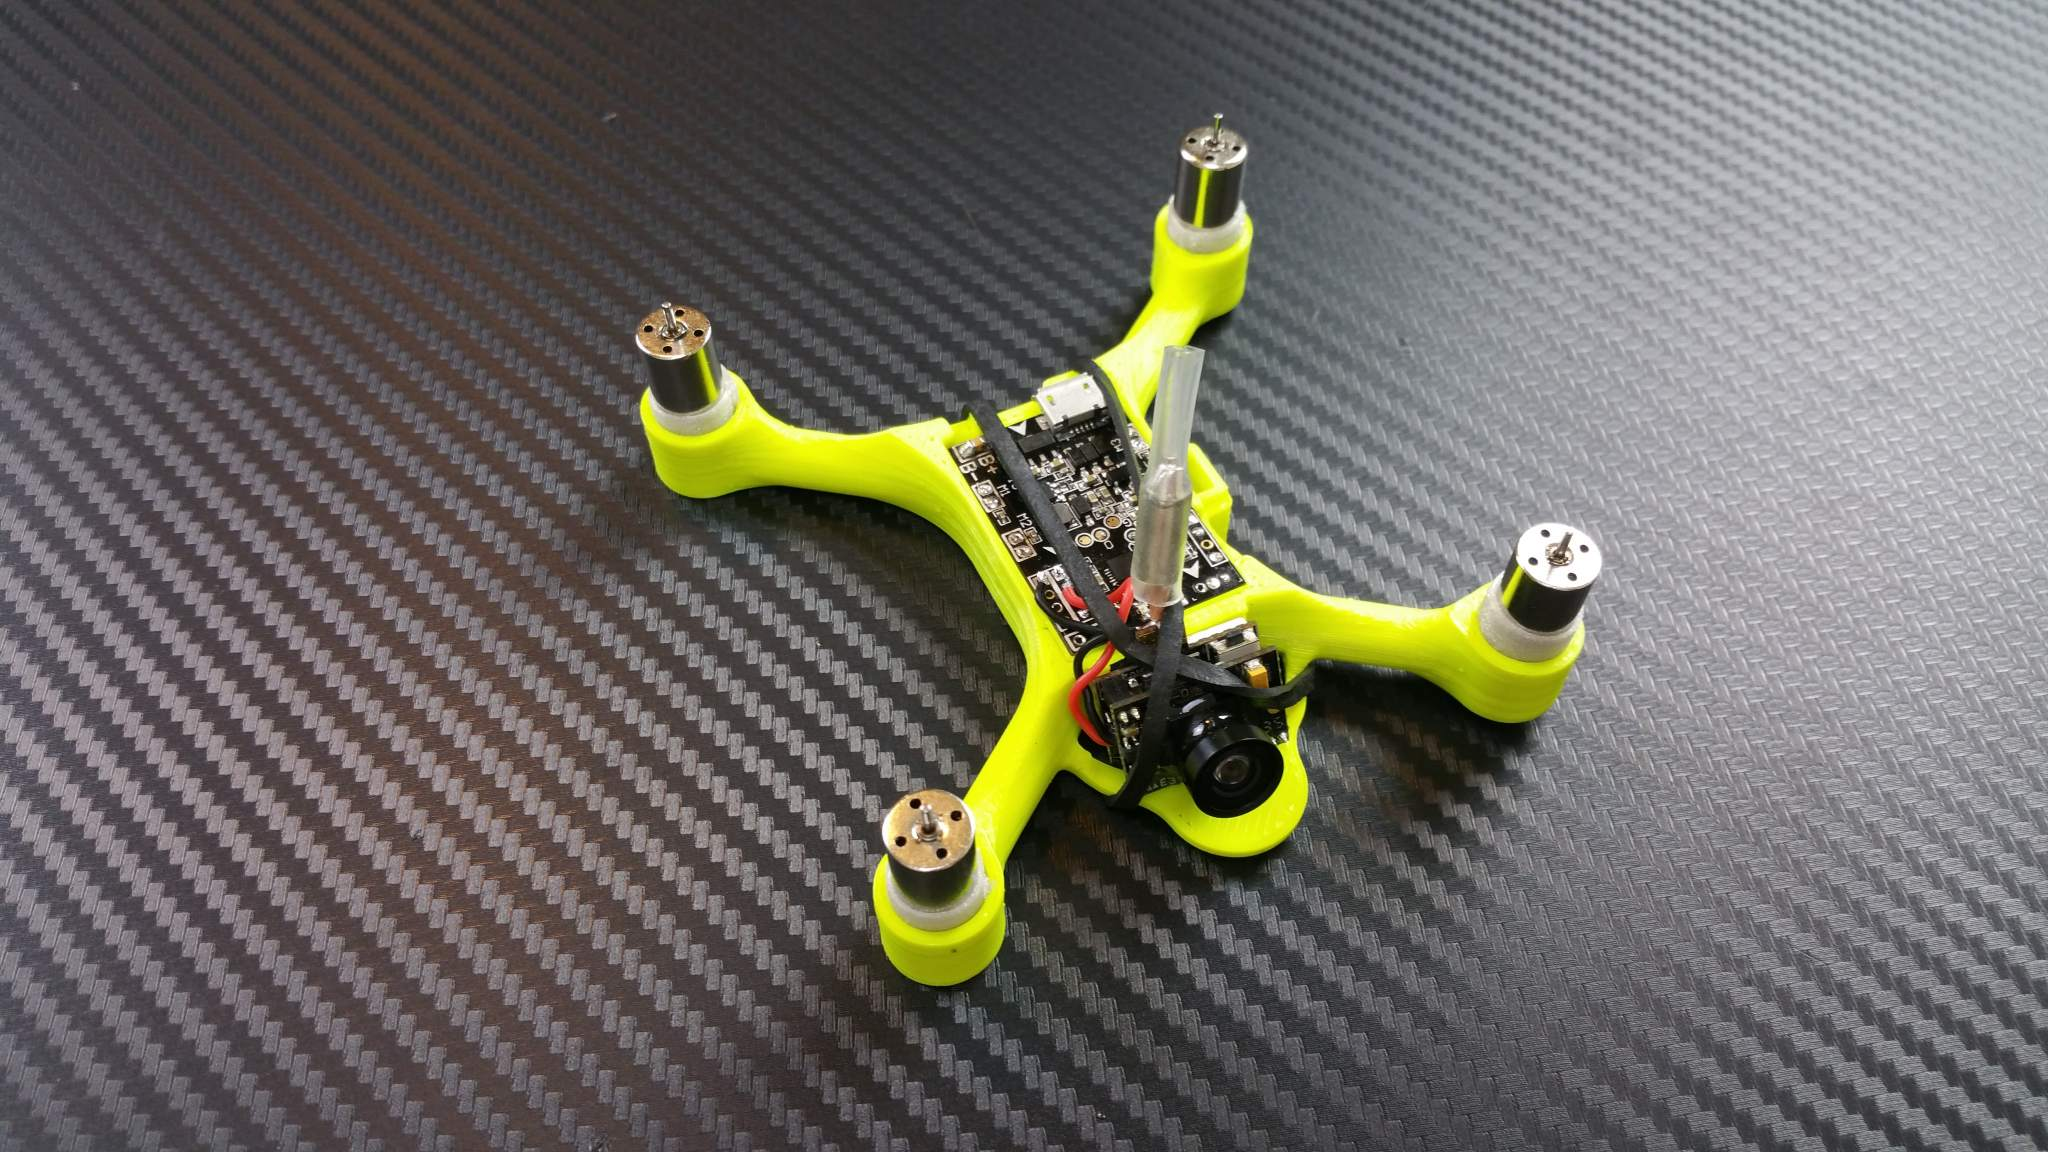 The Micro Quad MK XI frame complete with electronics and motors. Image via Neatherbot on MyMiniFactory.